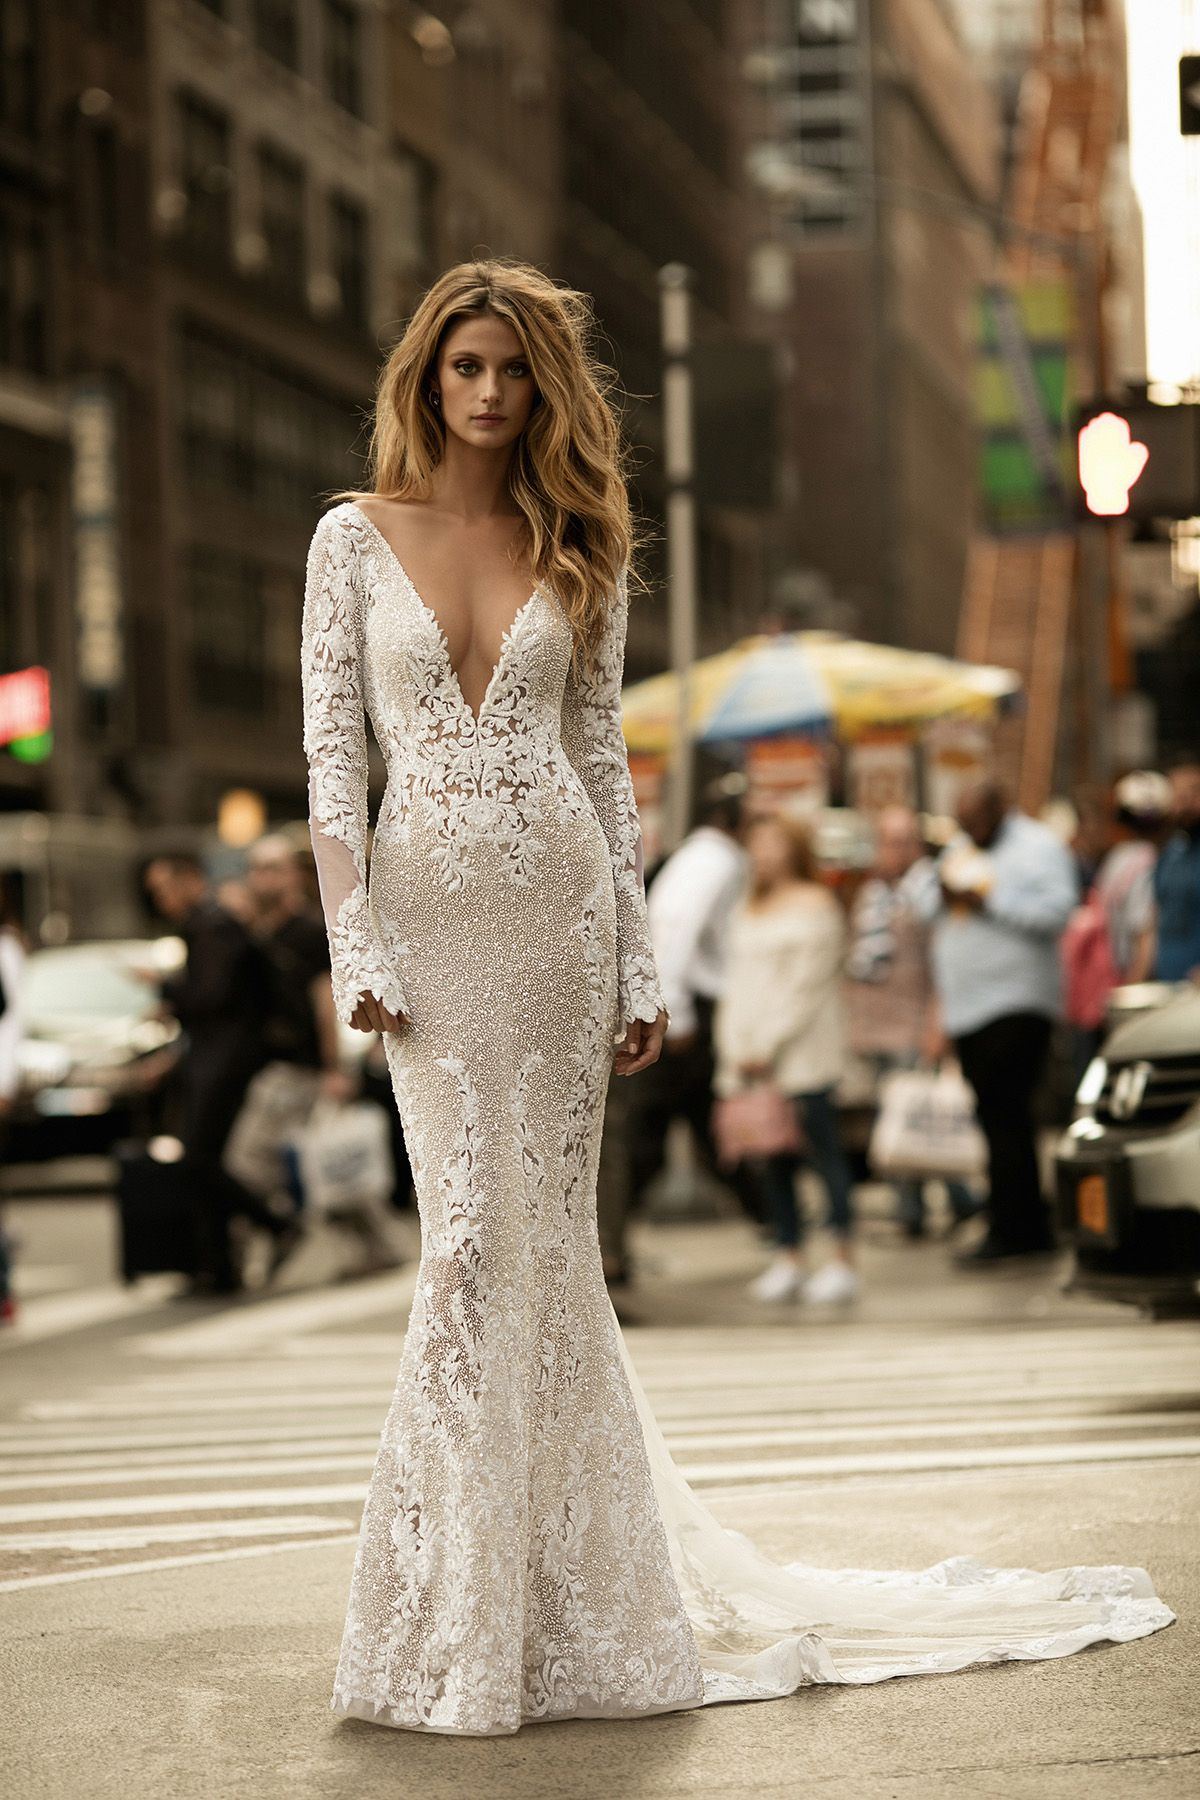 b38a4a946cf0 Sexy wedding gown with plunging neckline and sleeves    BERTA s Fall Winter  2017 bridal collection is sending us to  weddinggown heaven with its ...